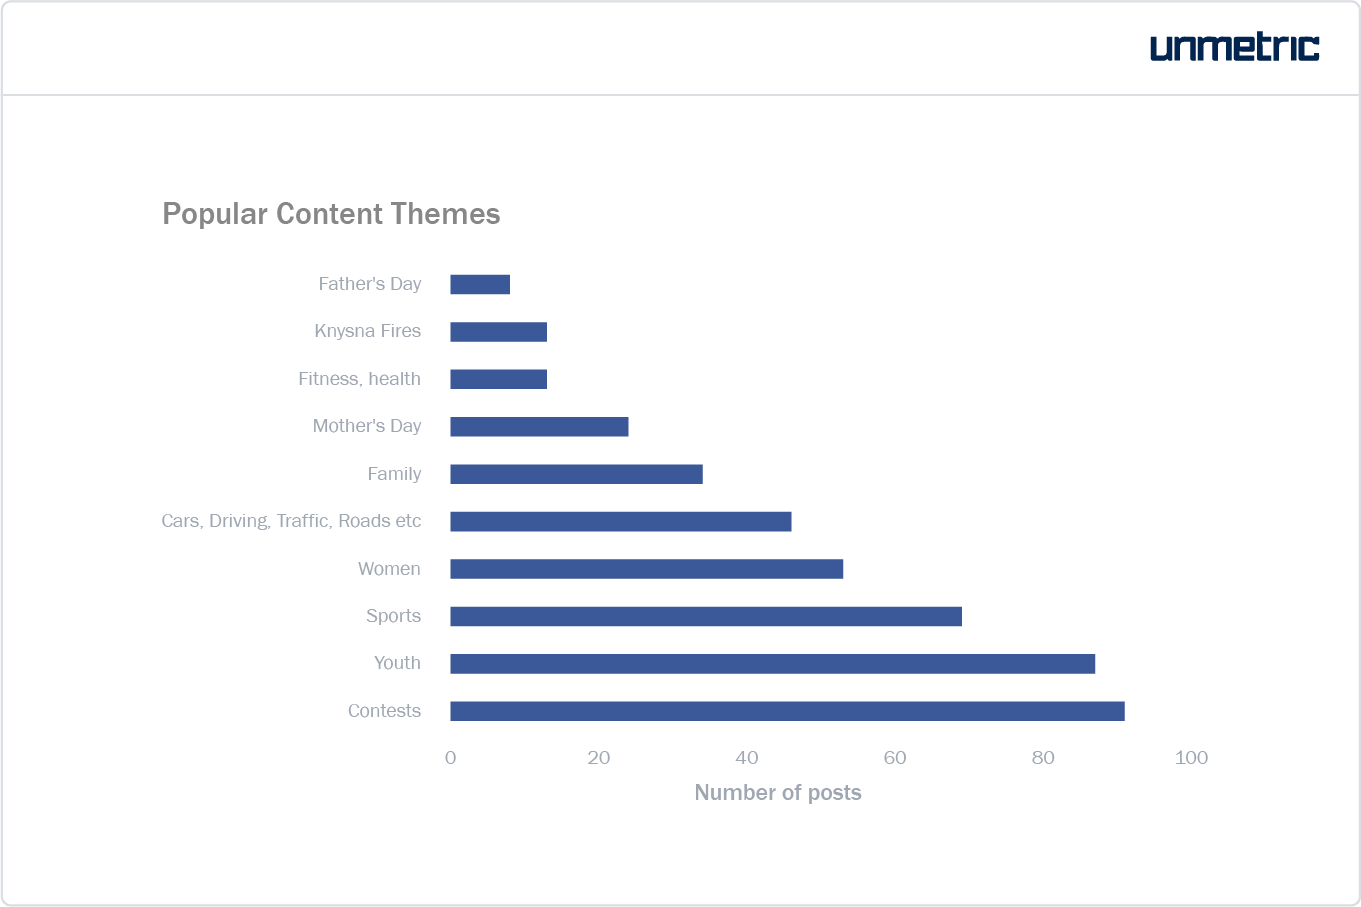 Split of content themes and topics